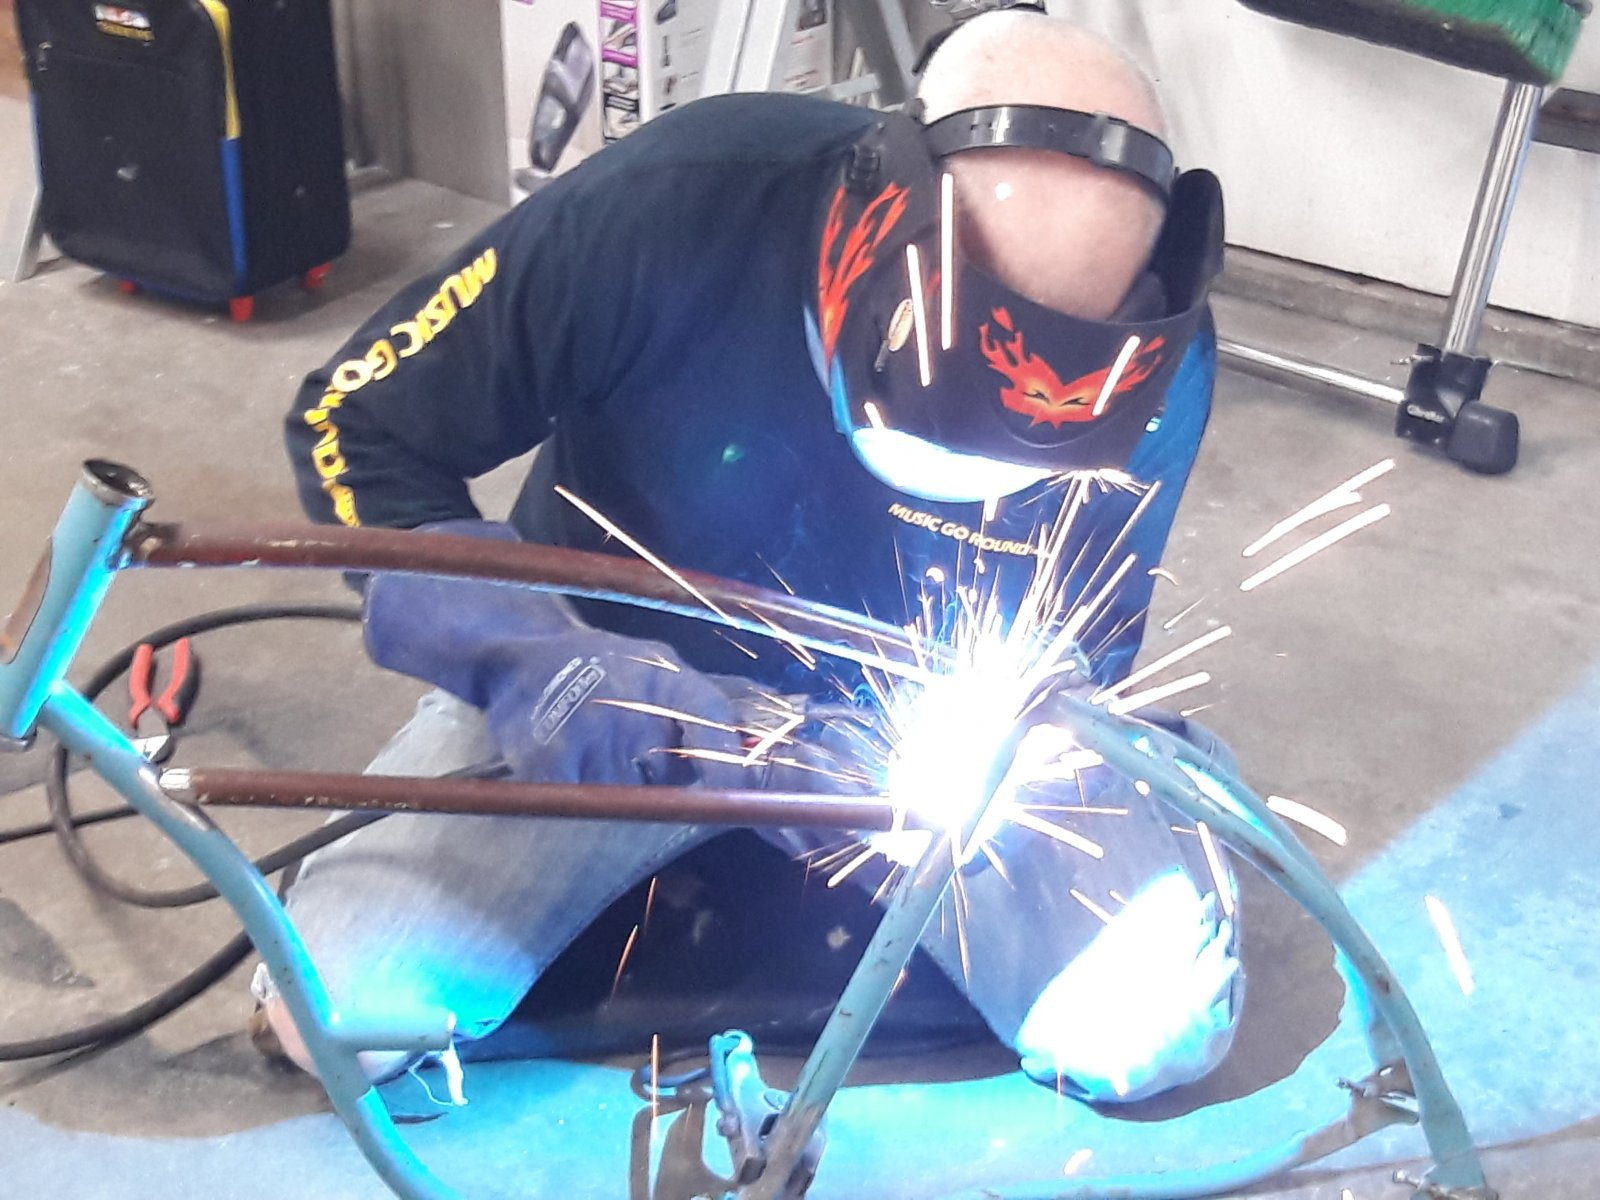 welder 3 finishing touche'.jpg